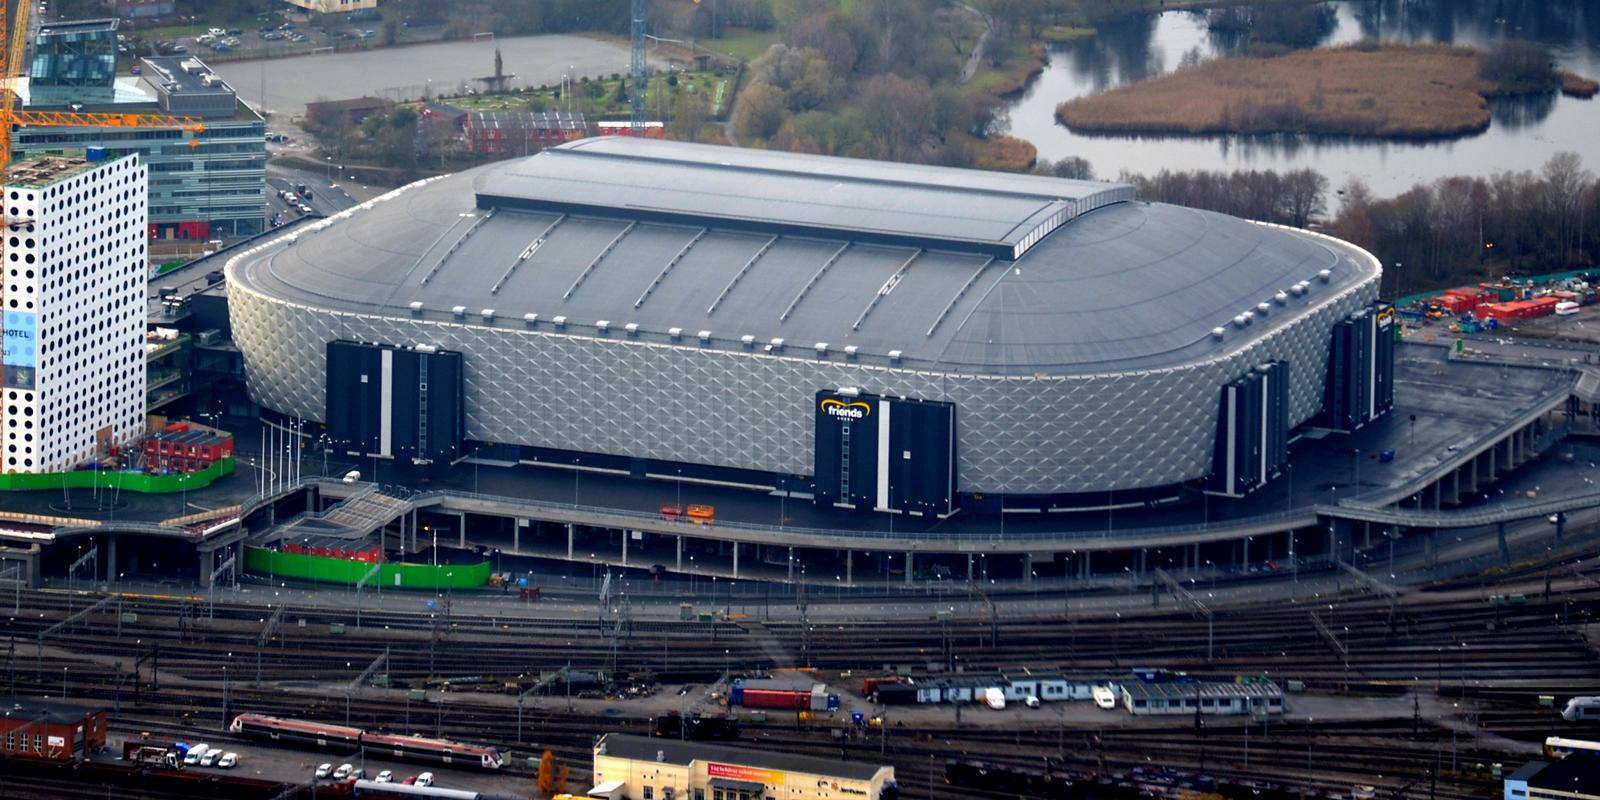 http://stadiumdb.com/pictures/stadiums/swe/friends_arena/friends_arena03.jpg